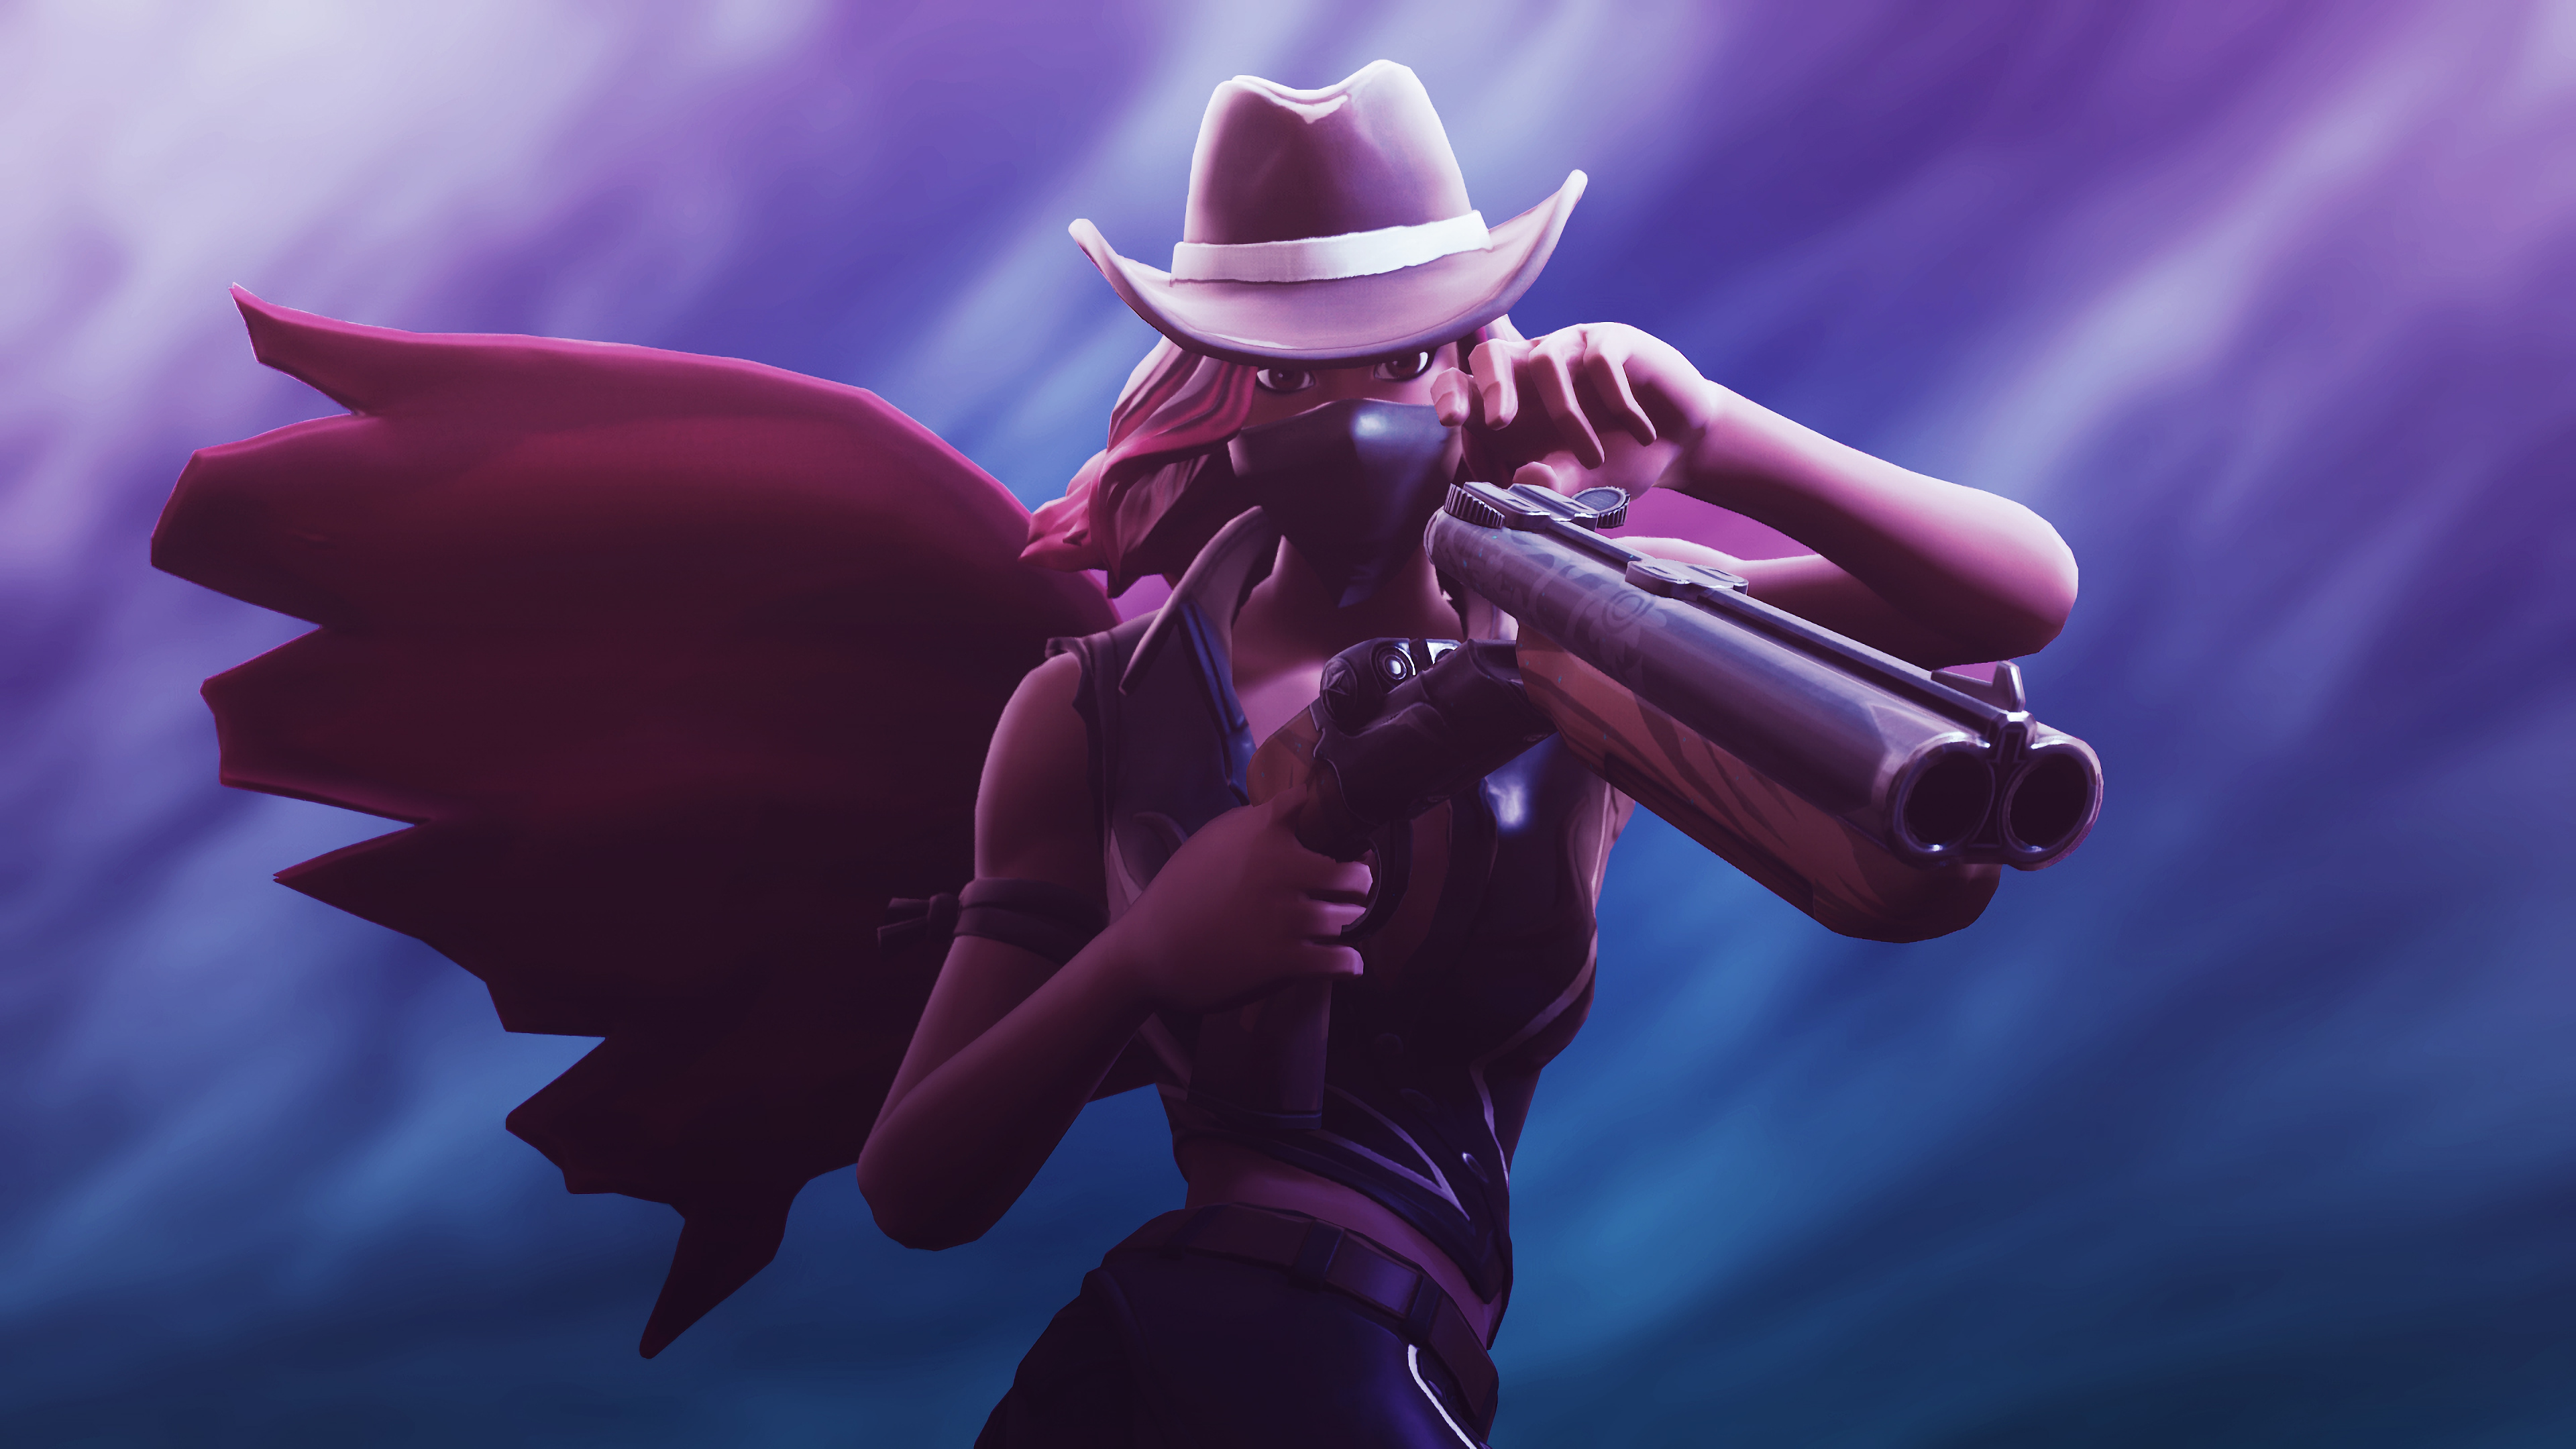 Calamity Fortnite Season 6 4K 2018 Wallpaper | HD Wallpapers Mafia